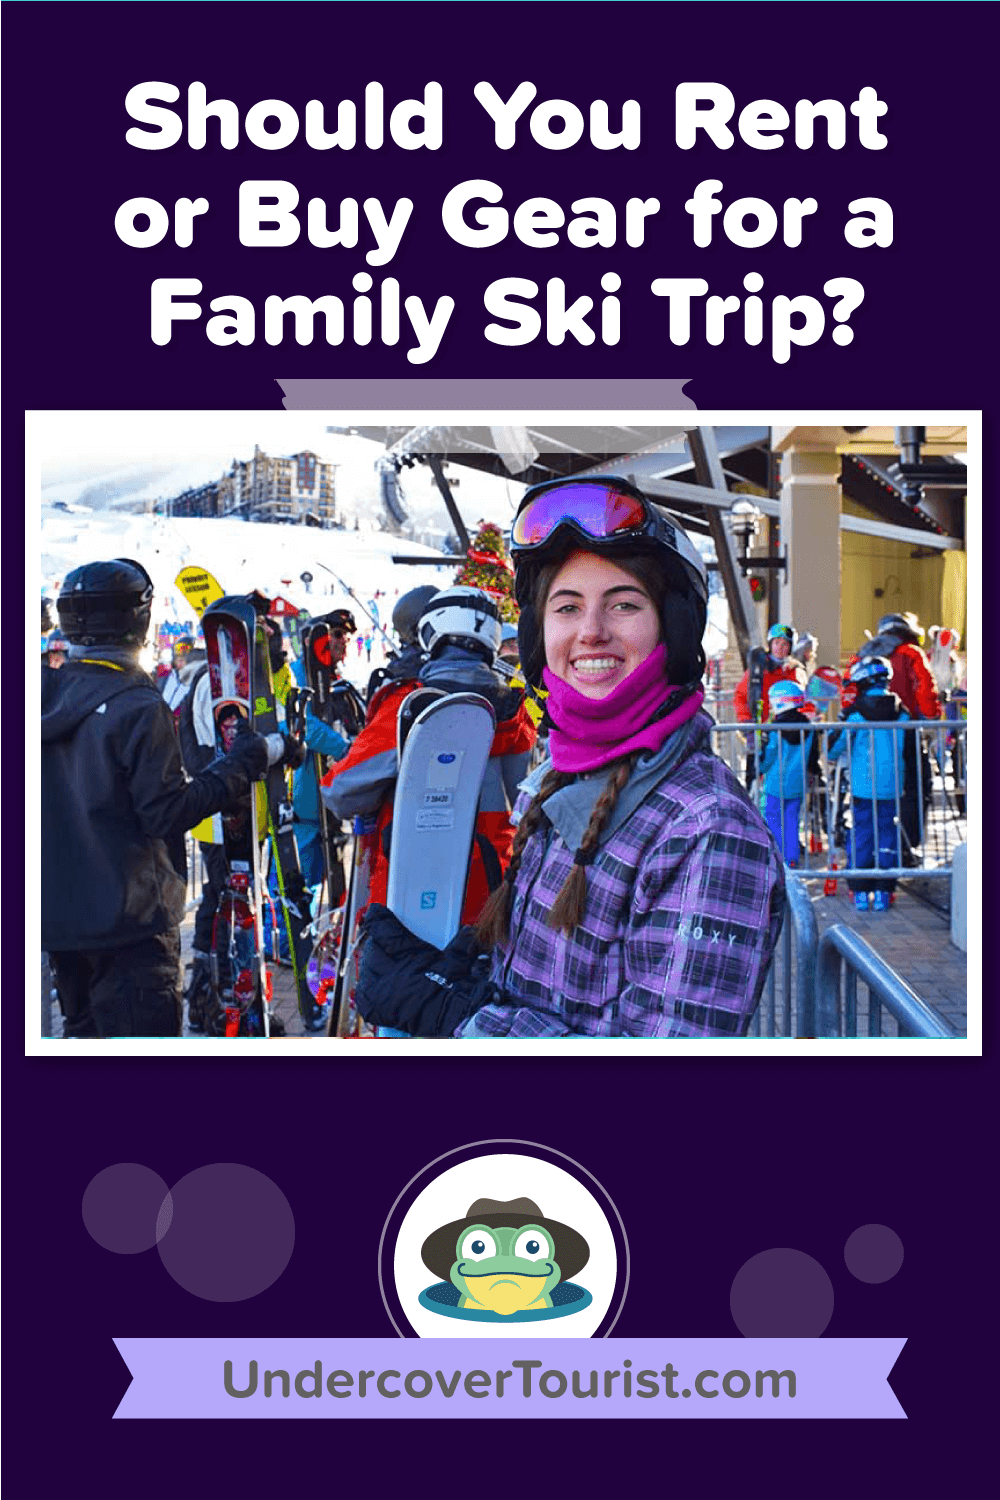 Should You Rent or Buy Gear for a Family Ski Trip - Pinterest